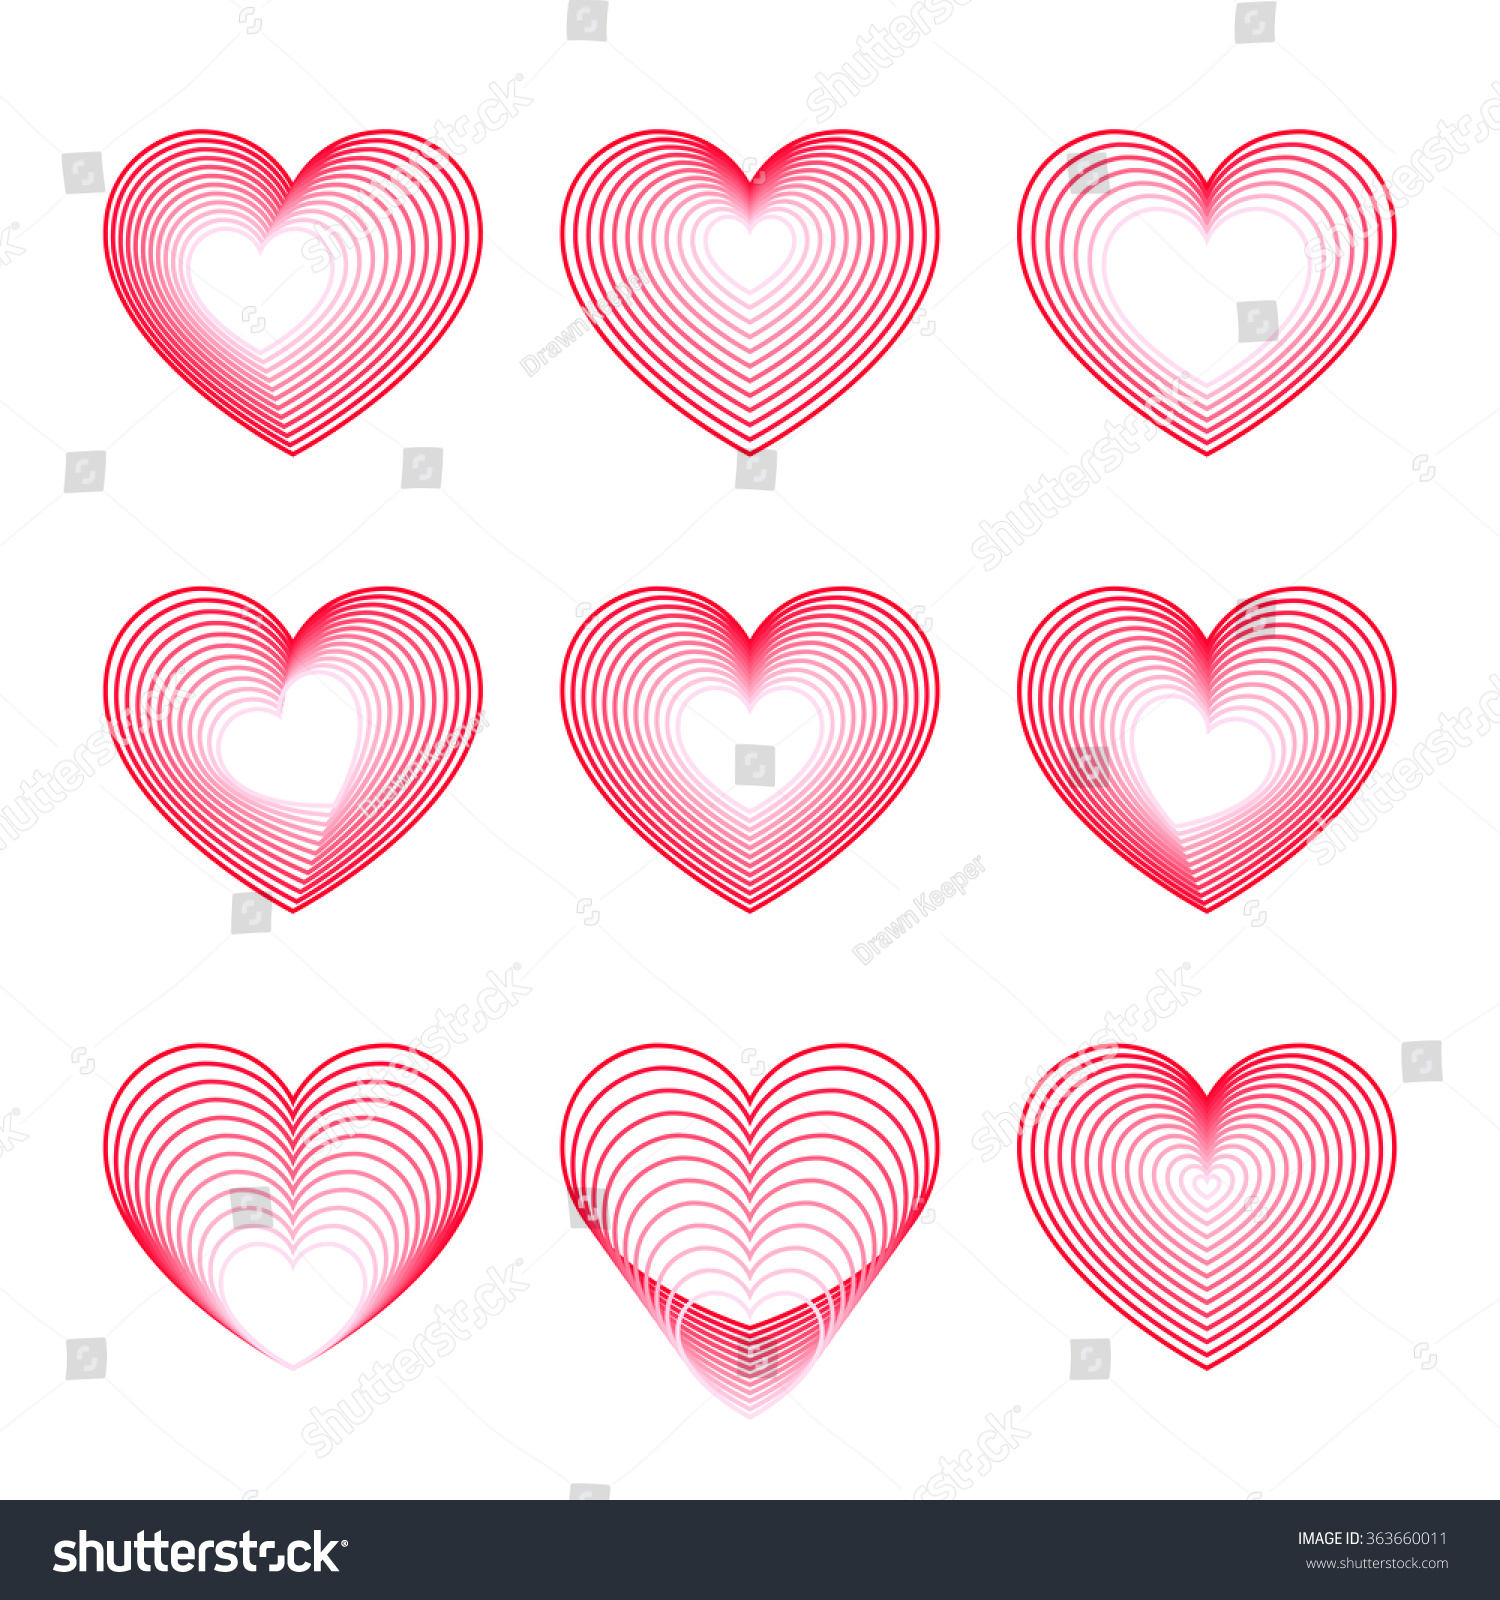 Red Heart Symbols Of Love Set Of Heart Shapes Made From Vector